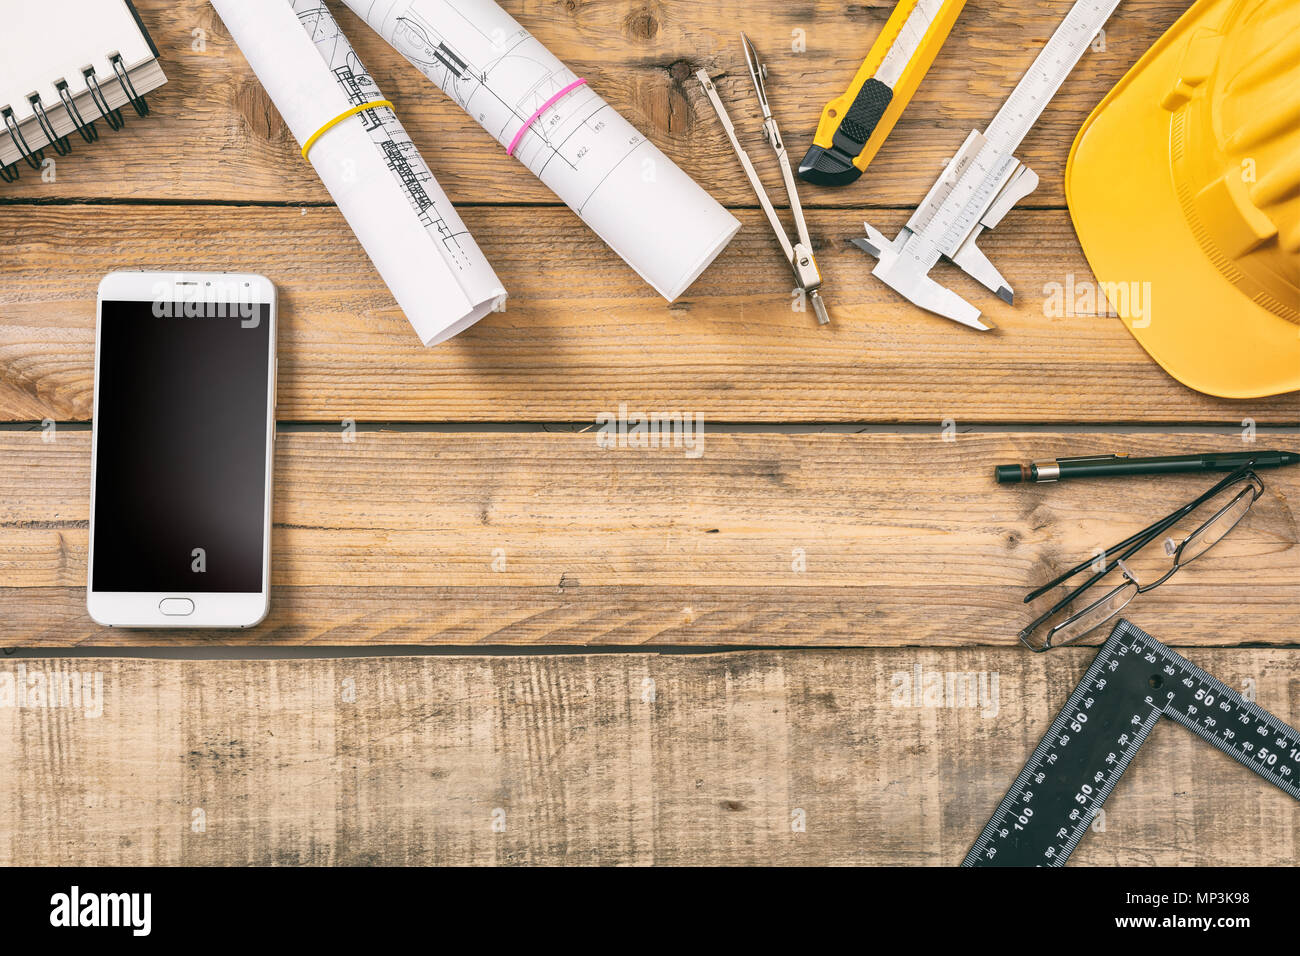 Architect workplace. Smart phone with black blank screen, project construction blueprints and engineering tools on wooden desk, copy space, top view - Stock Image